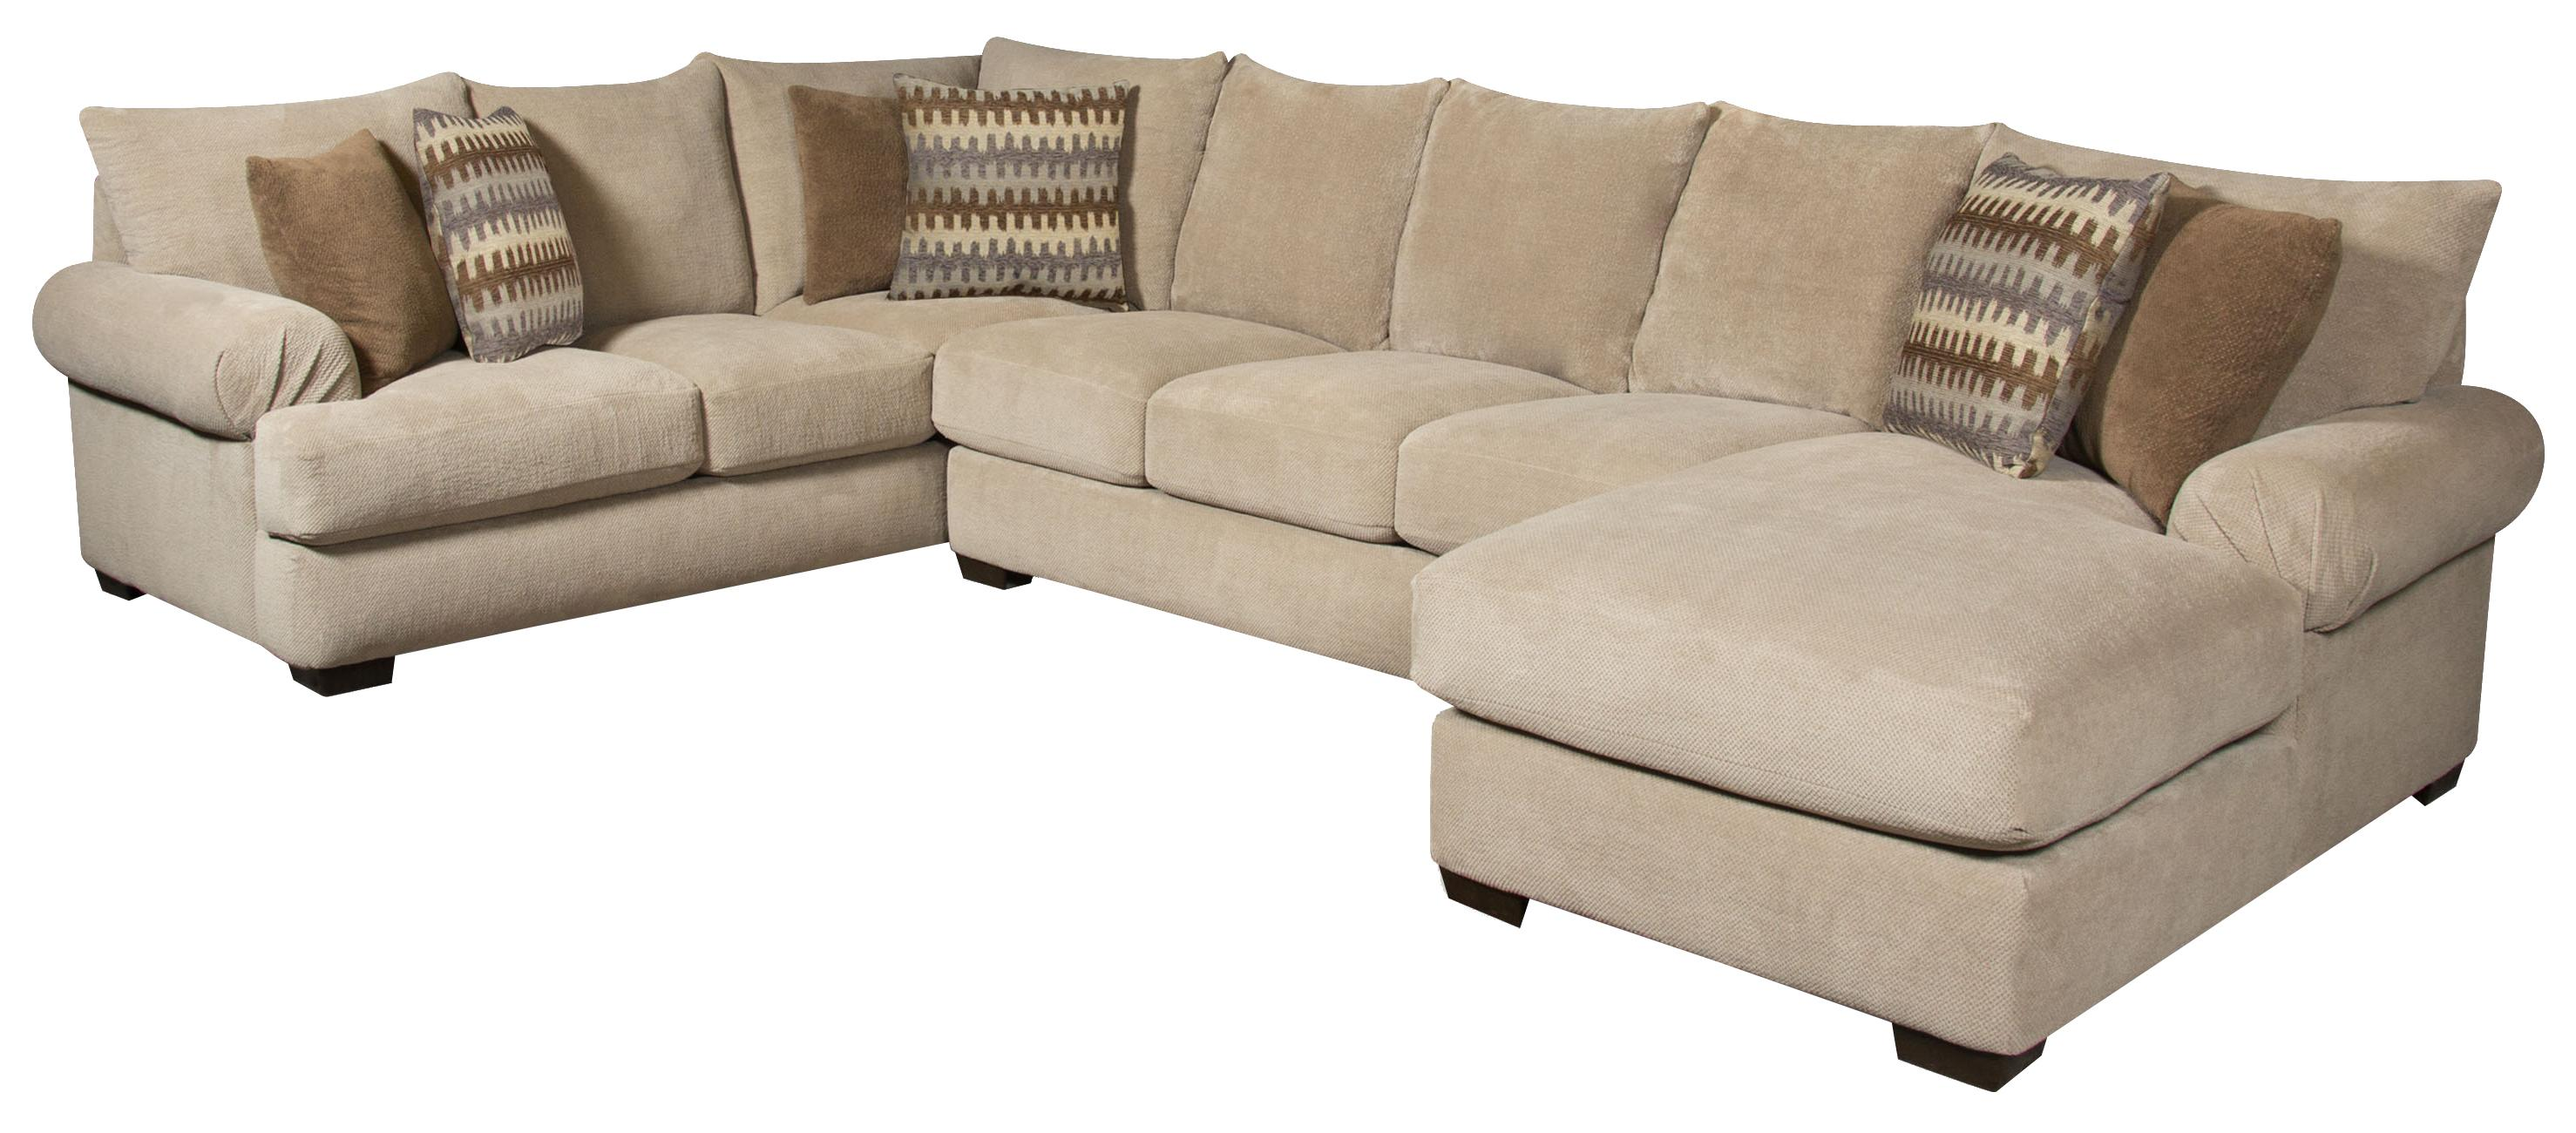 Corinthian 61A0 Sectional Sofa with Right Side Chaise - Item Number 61A3LC+NA+  sc 1 st  Furniture Fair : bassett sectional sofa - Sectionals, Sofas & Couches